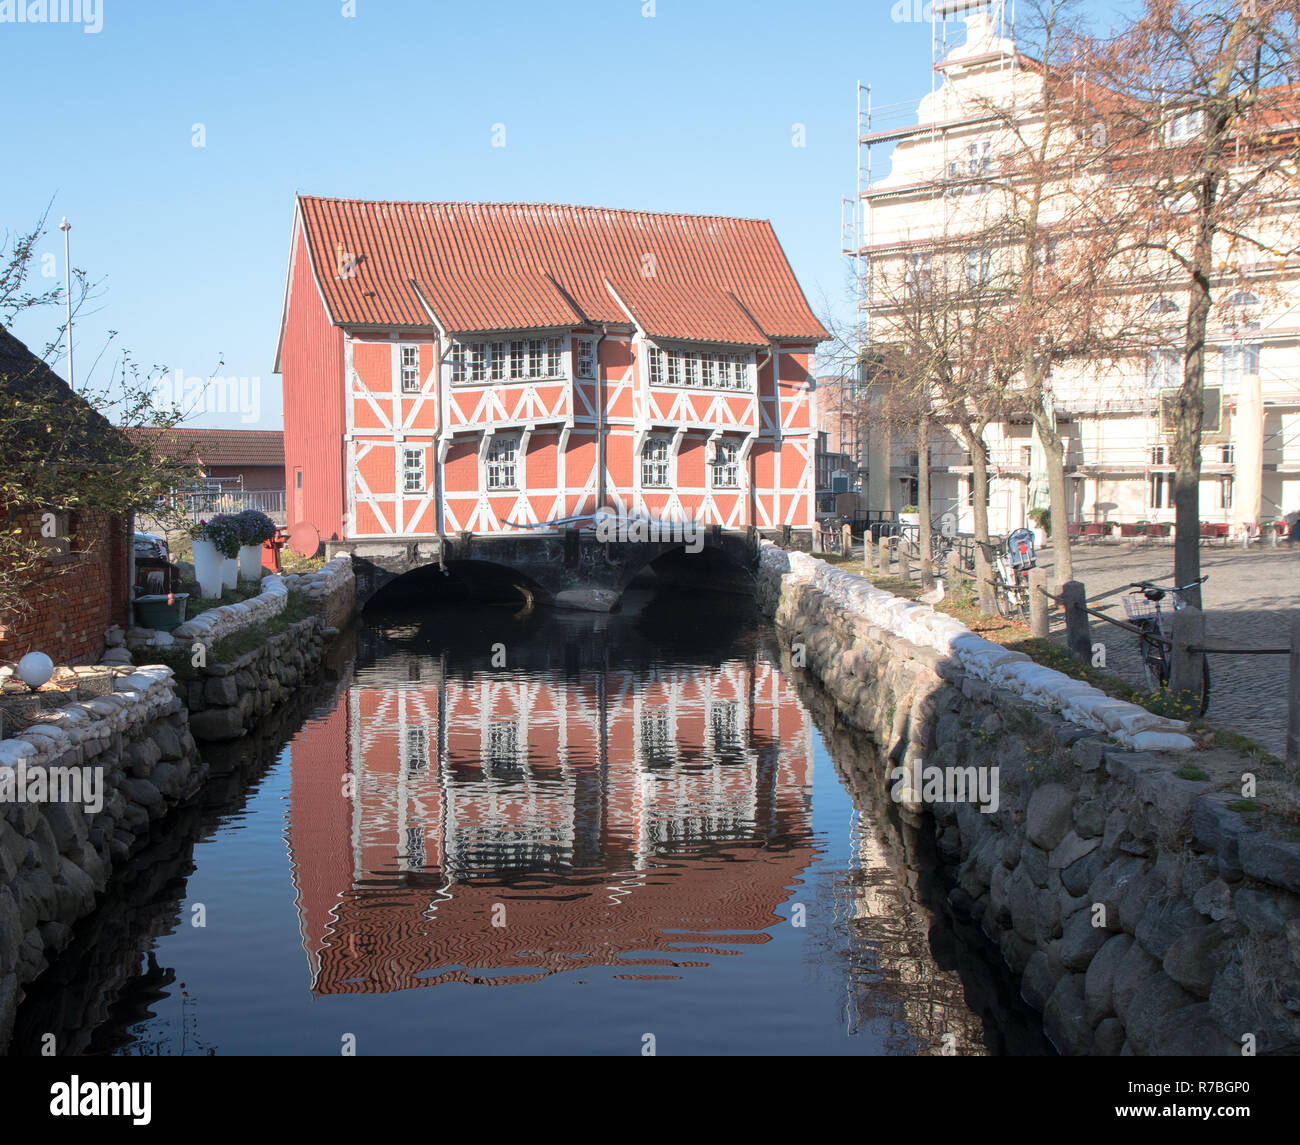 Historical half-timbered house, called Brueckenhaus (bridge house), spans the canal to the harbor of Wismar in Mecklenburg-Vorpommern, Northern German - Stock Image